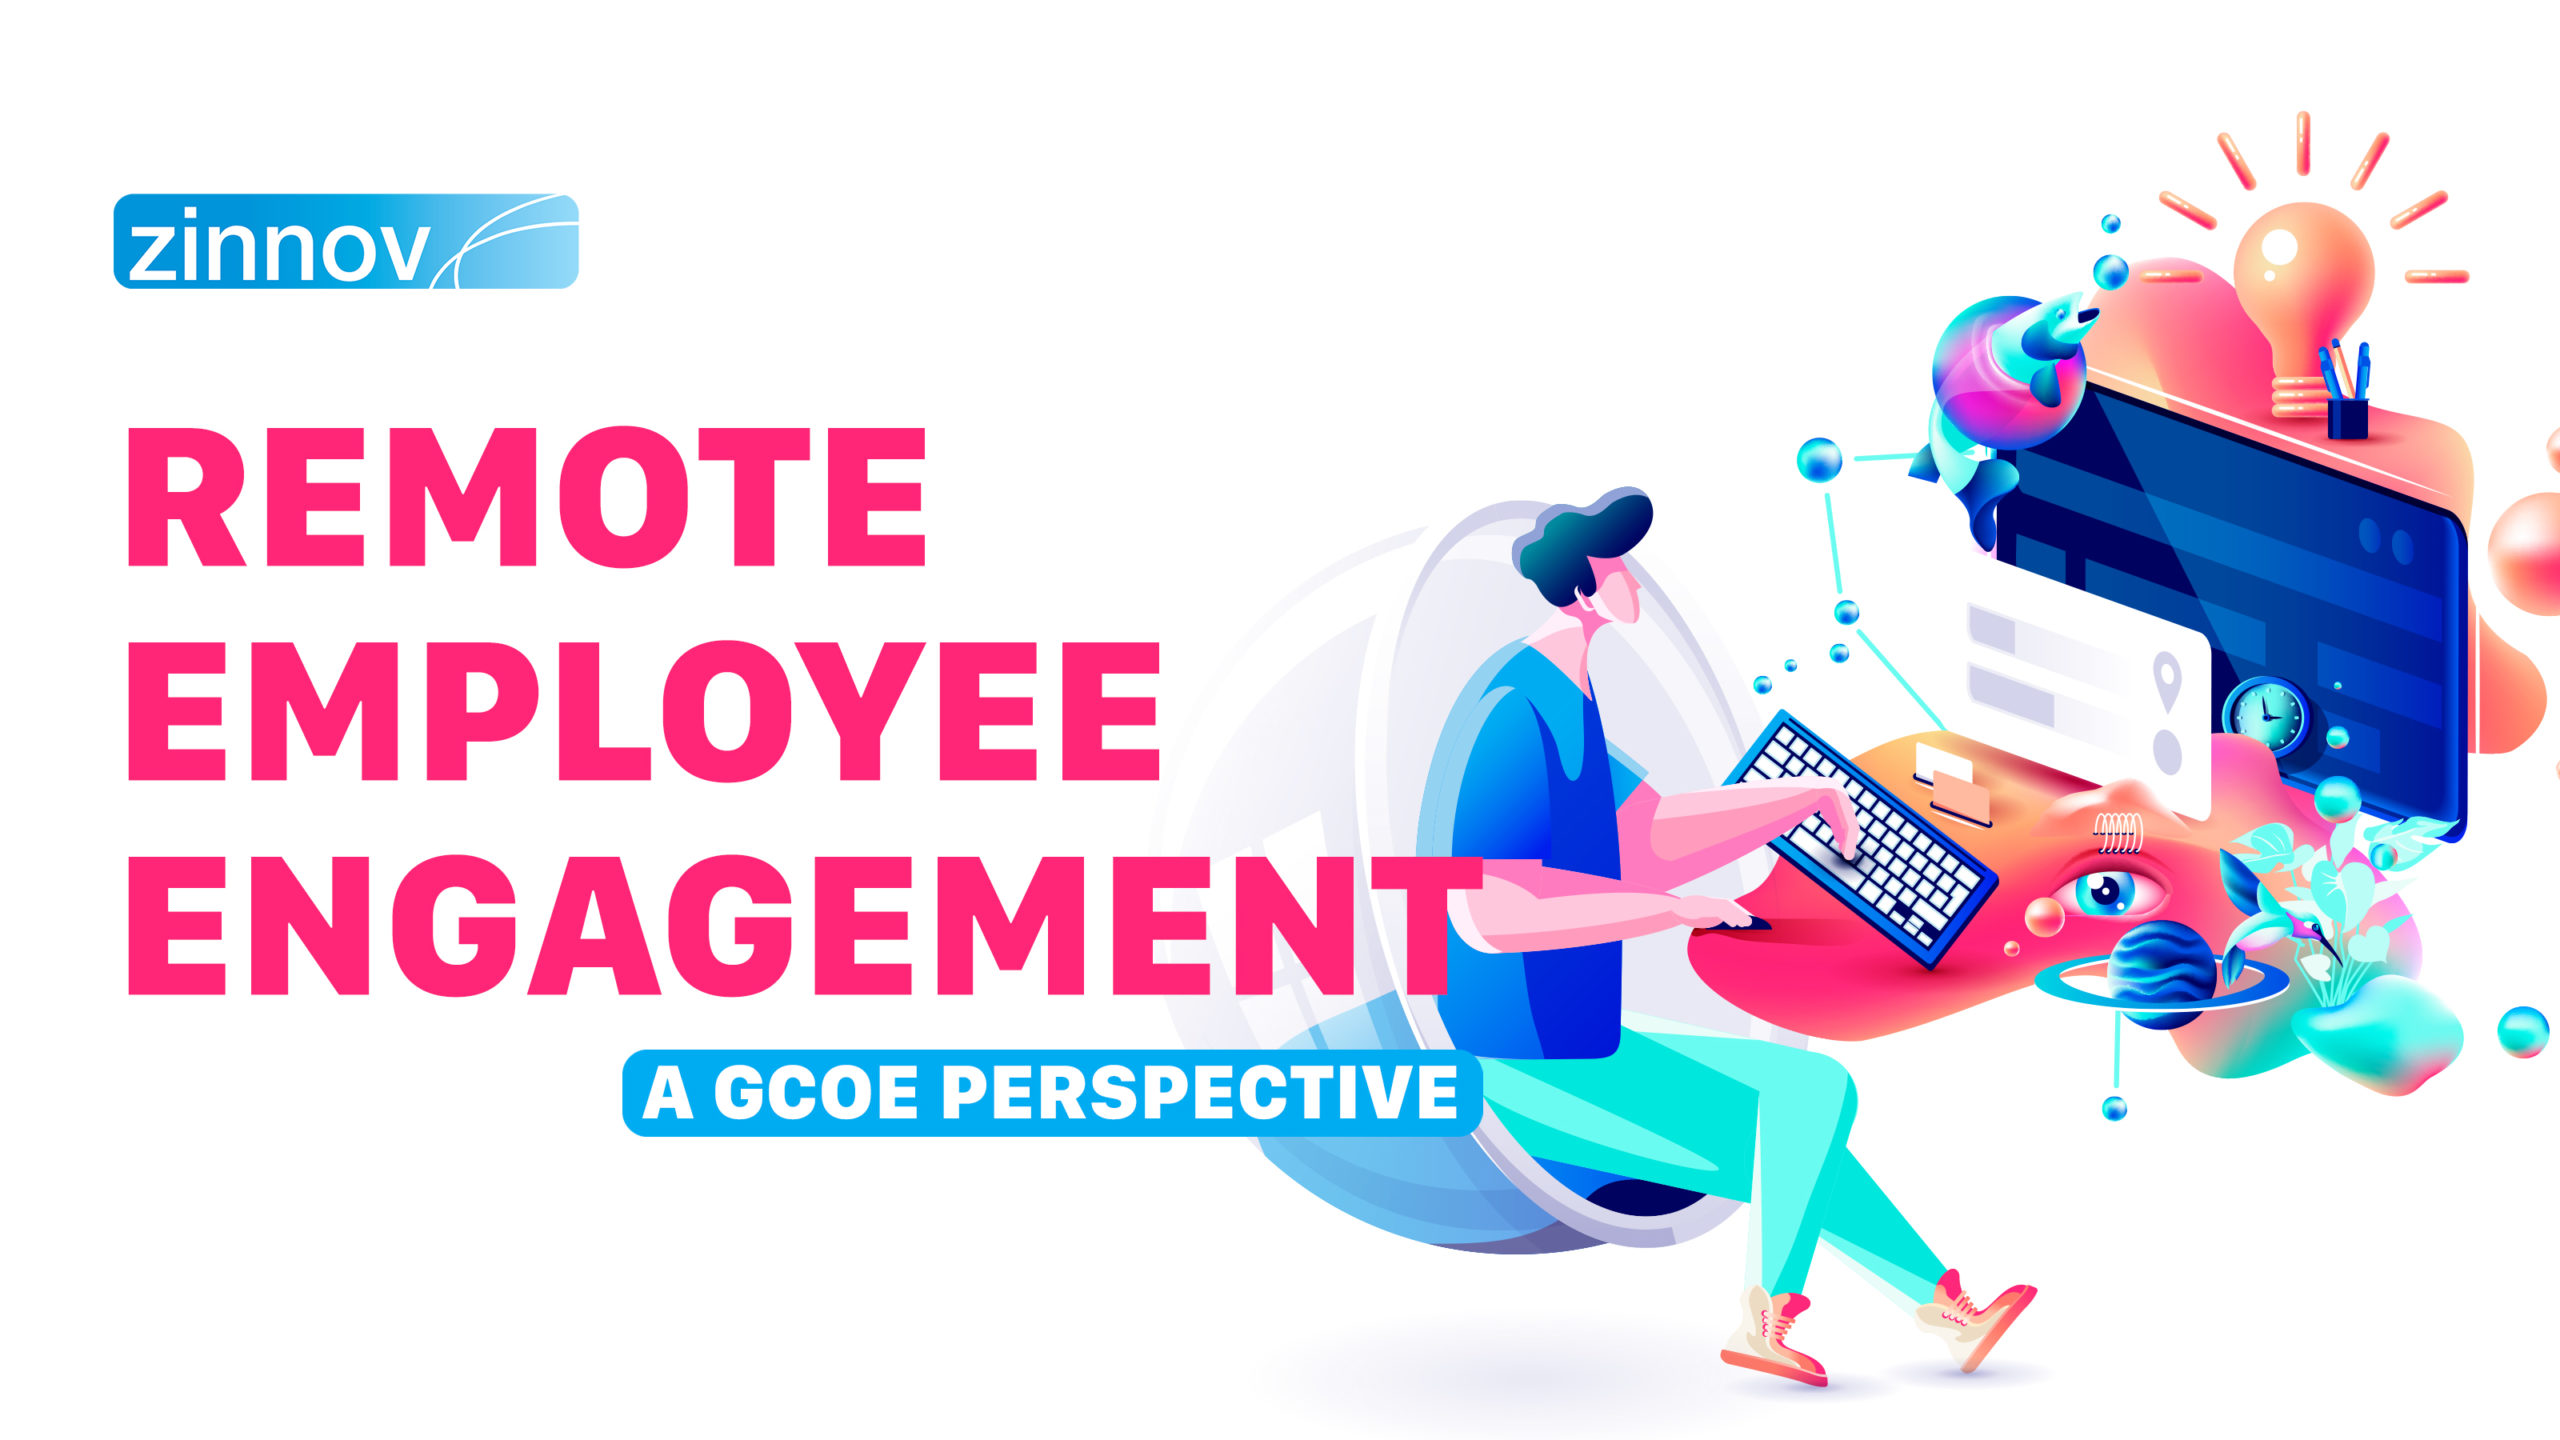 Remote Employee Engagement - A GCoE Perspective